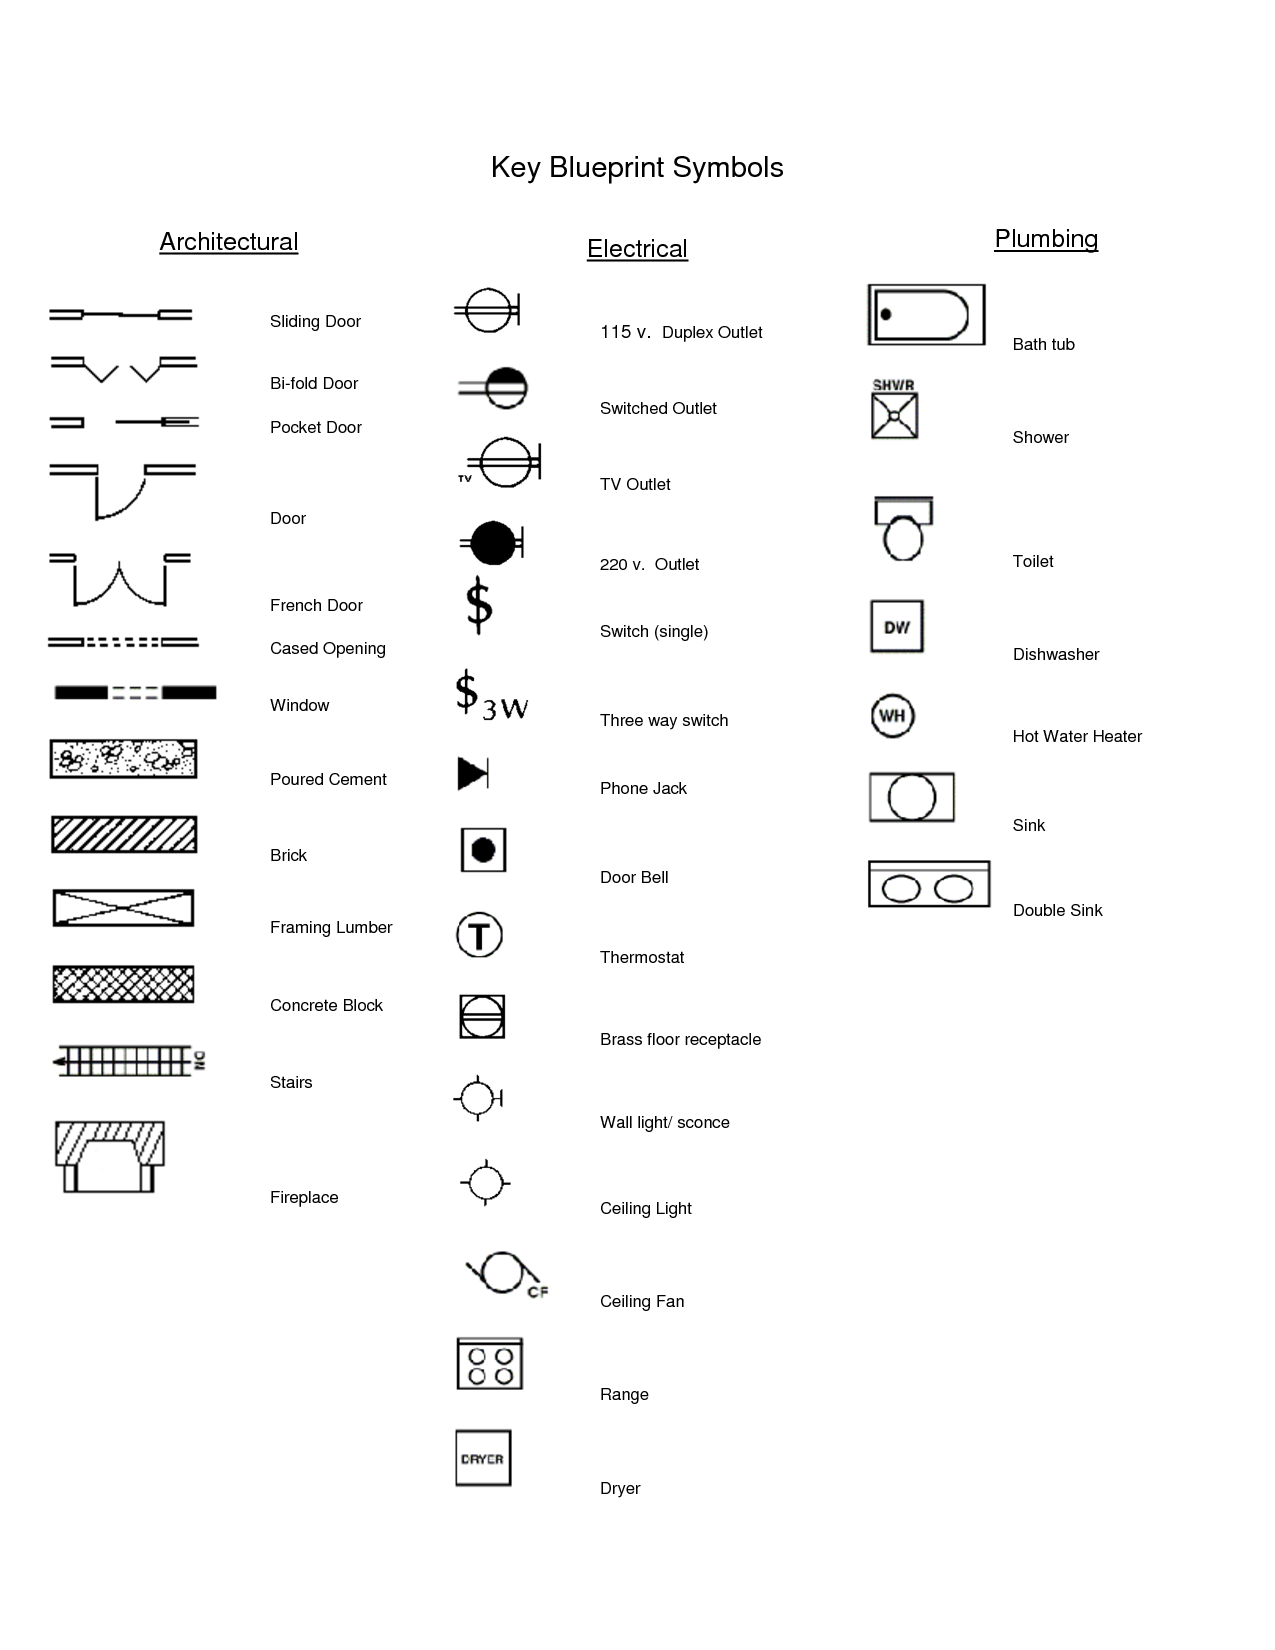 Electrical Wiring Diagram Symbols In Autocad : Electrical outlet symbols blueprints brick pinned by